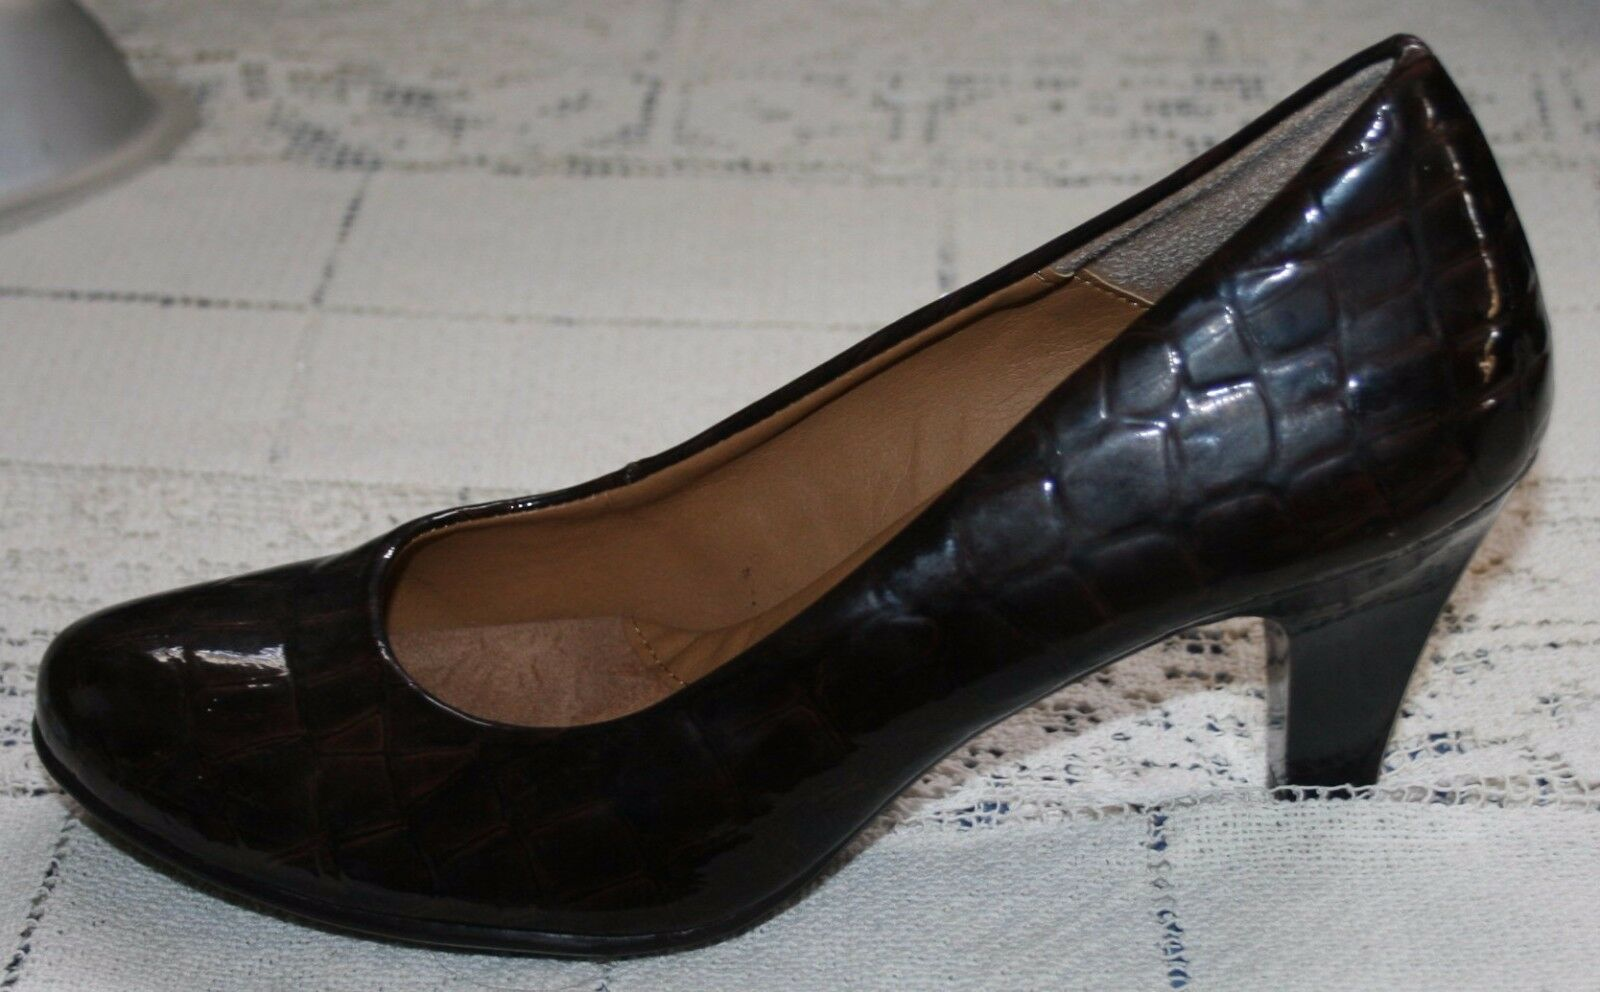 Womens Euro-Soft Sofft Heels Pumps Sz 7M 7 M Brown Faux Alligator Print